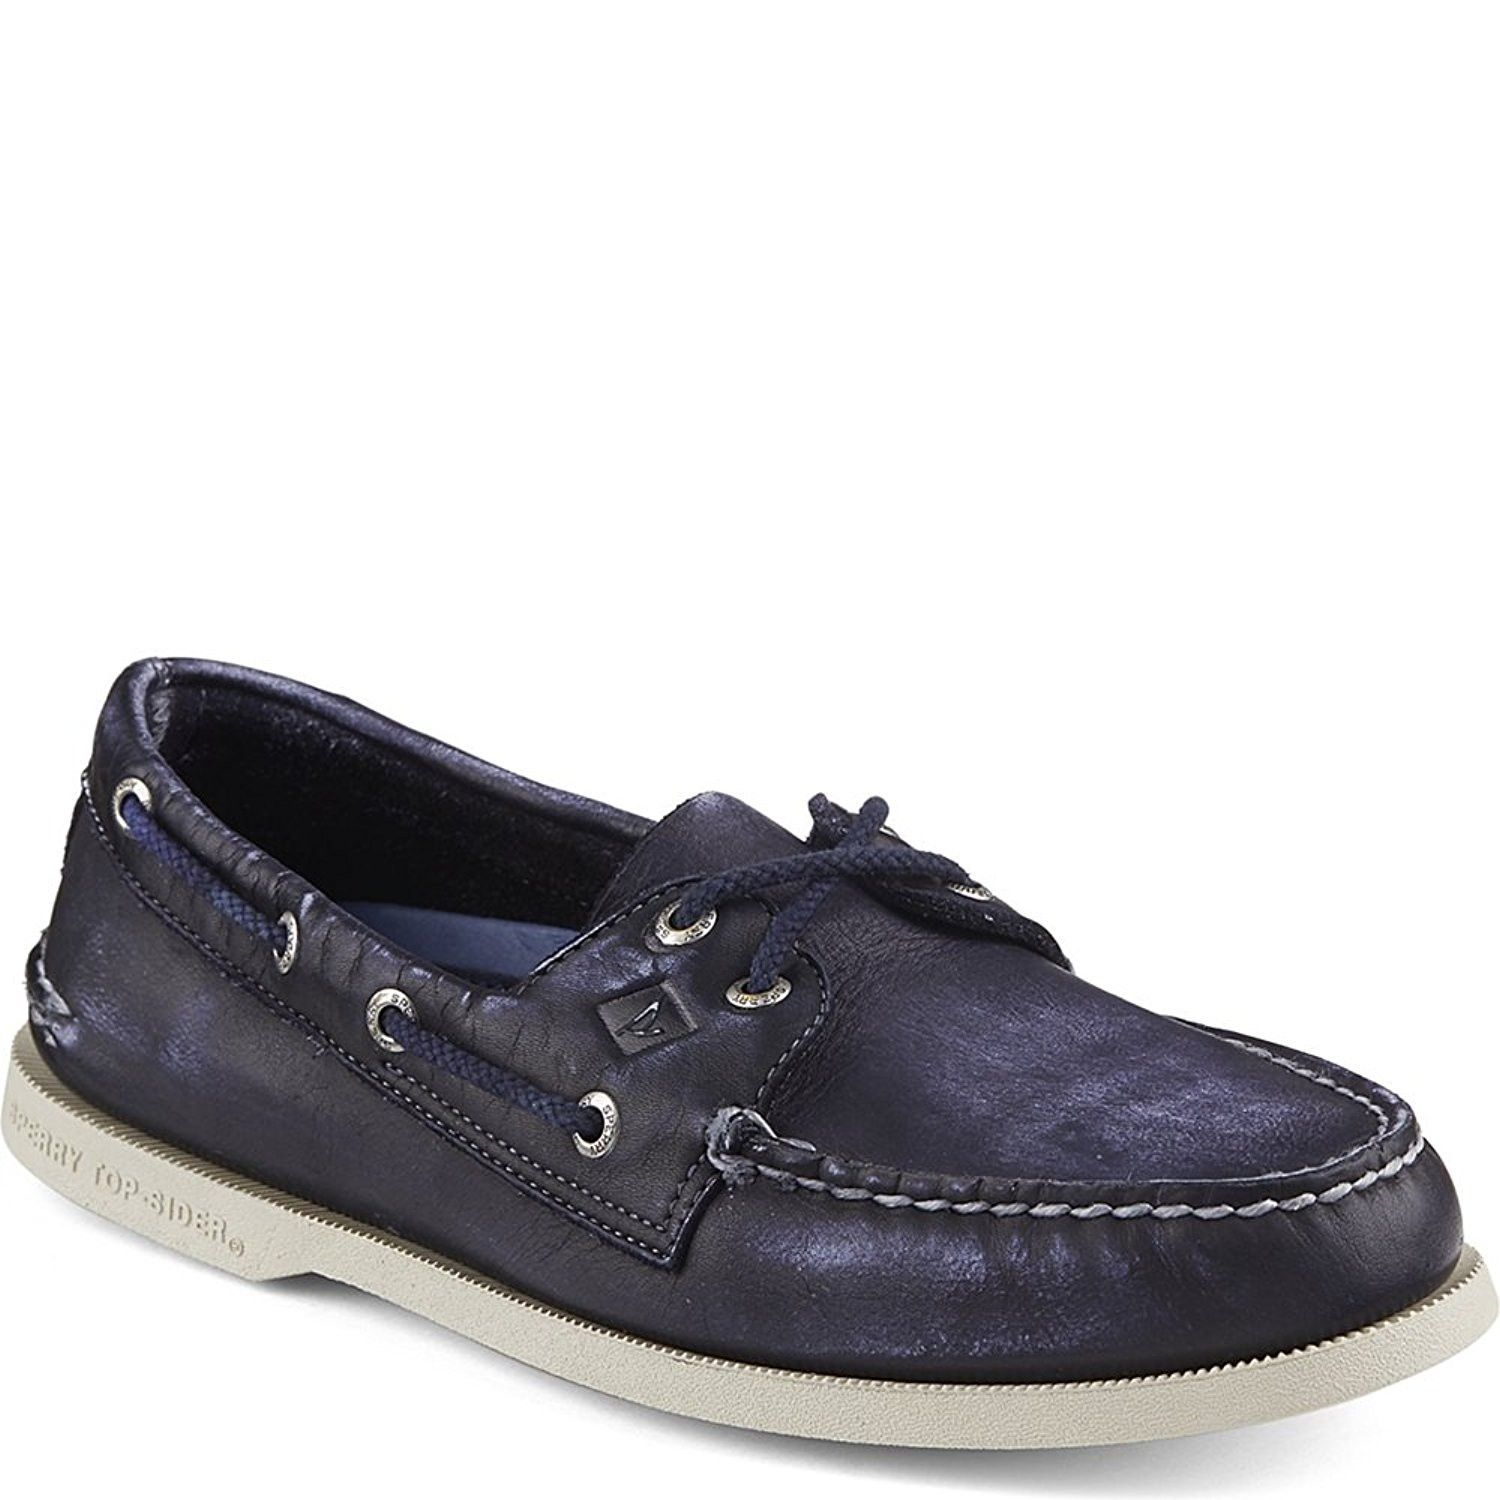 care for sperry top-sider shoes a \/online banking